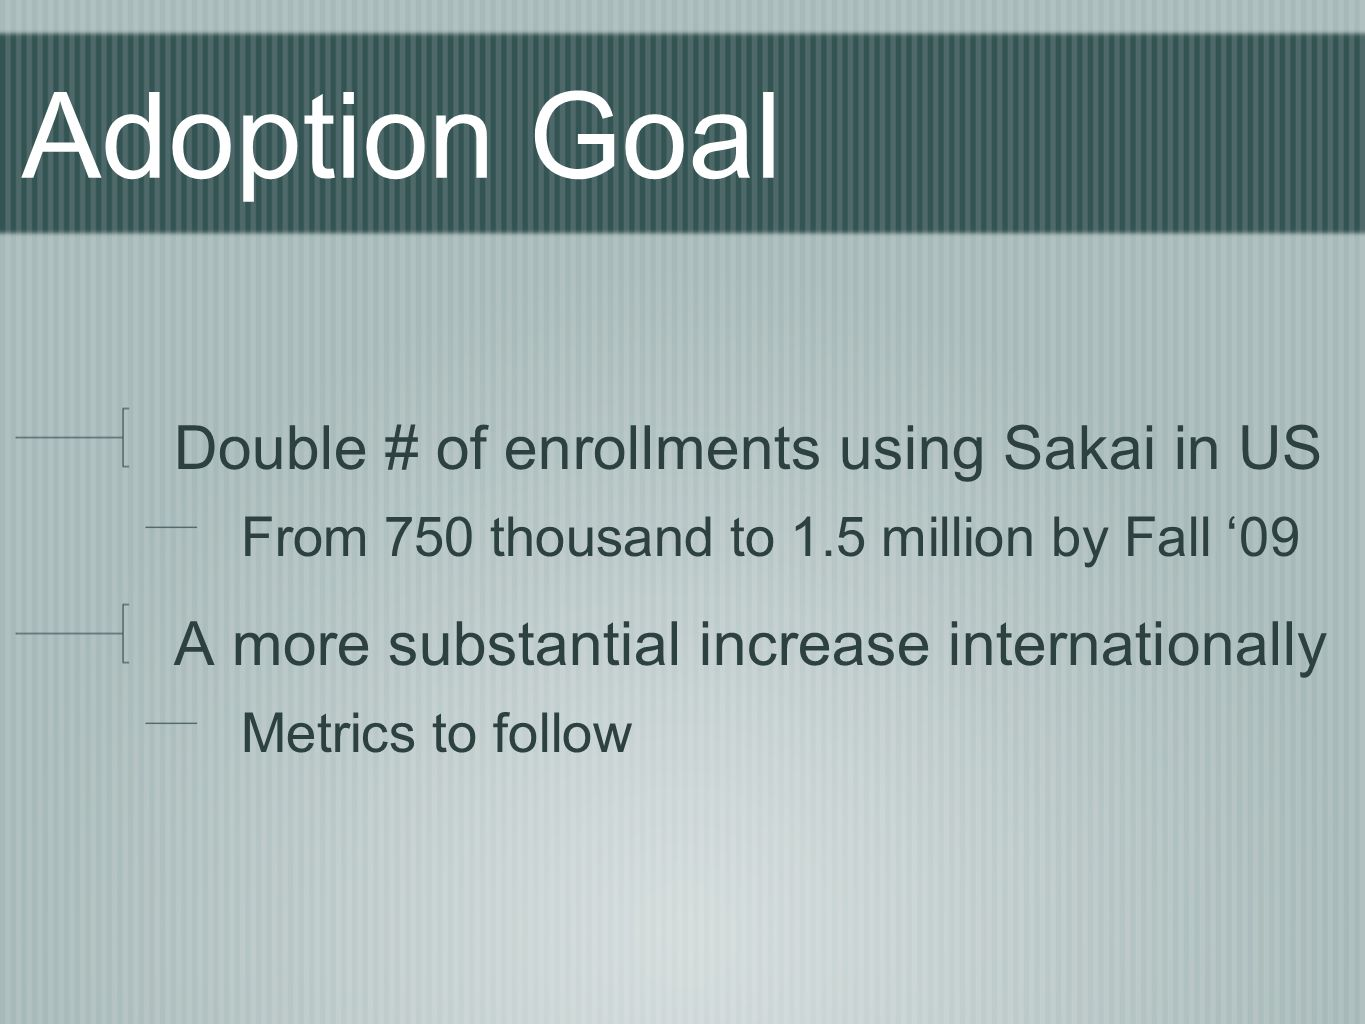 Adoption Goal Double # of enrollments using Sakai in US From 750 thousand to 1.5 million by Fall '09 A more substantial increase internationally Metrics to follow